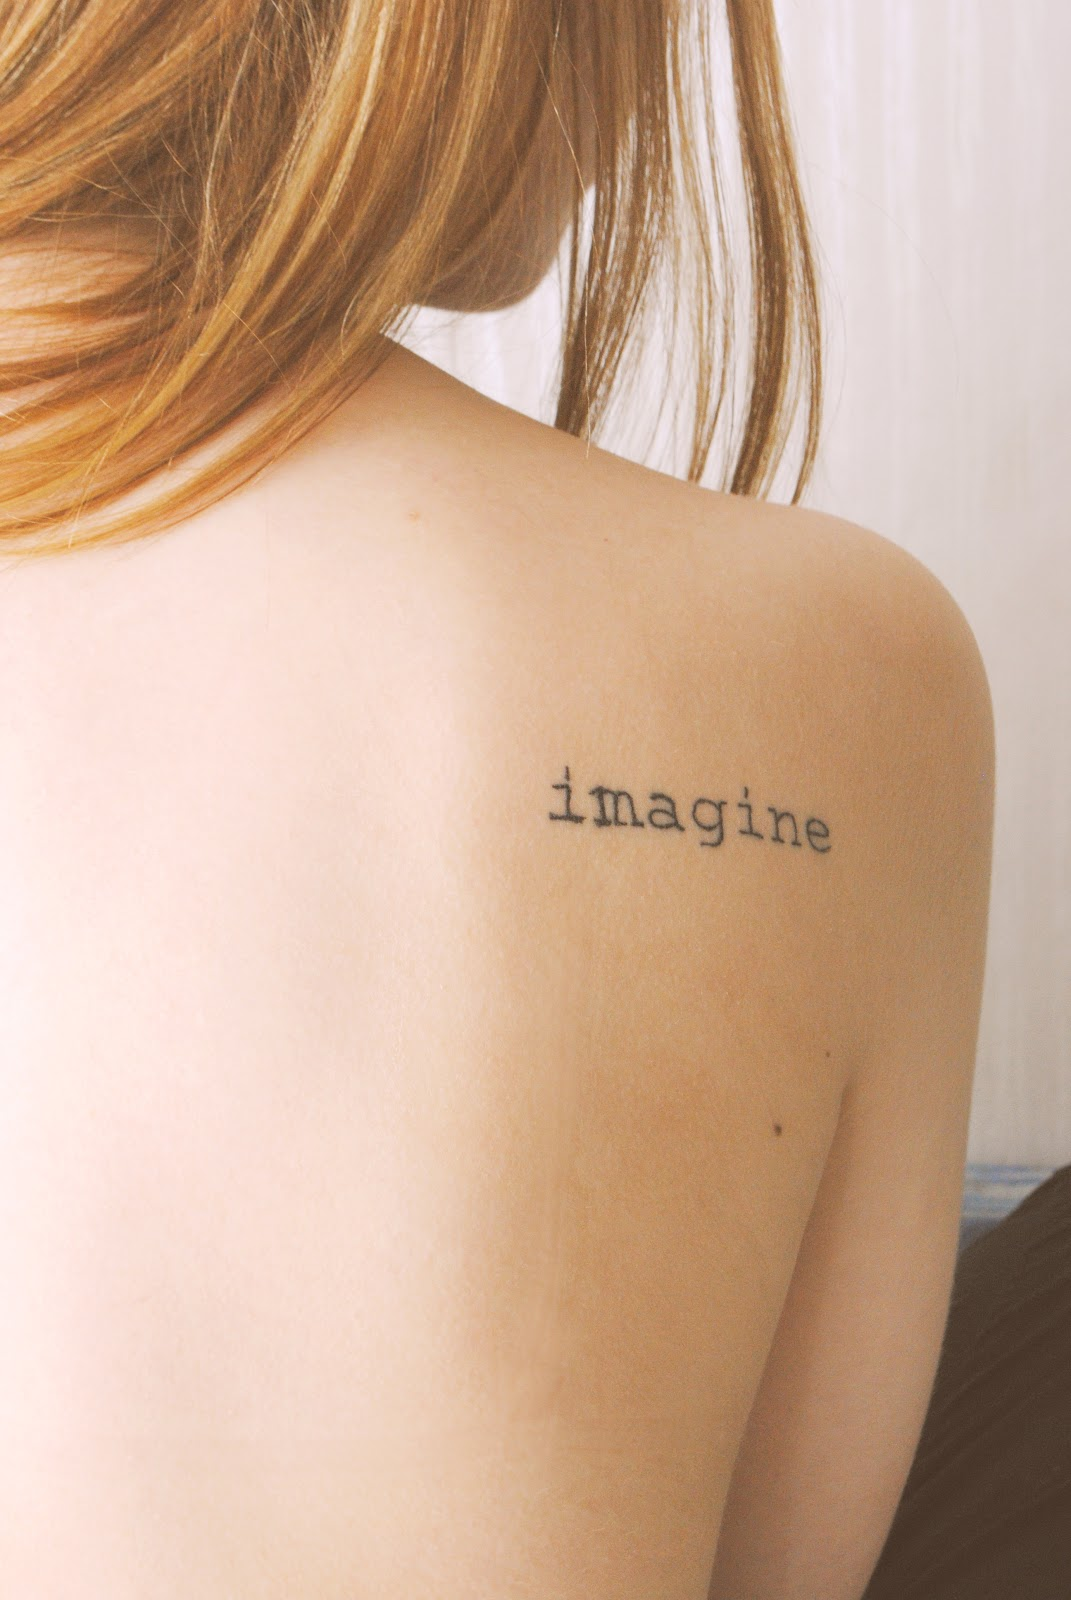 Imagine Tattoo